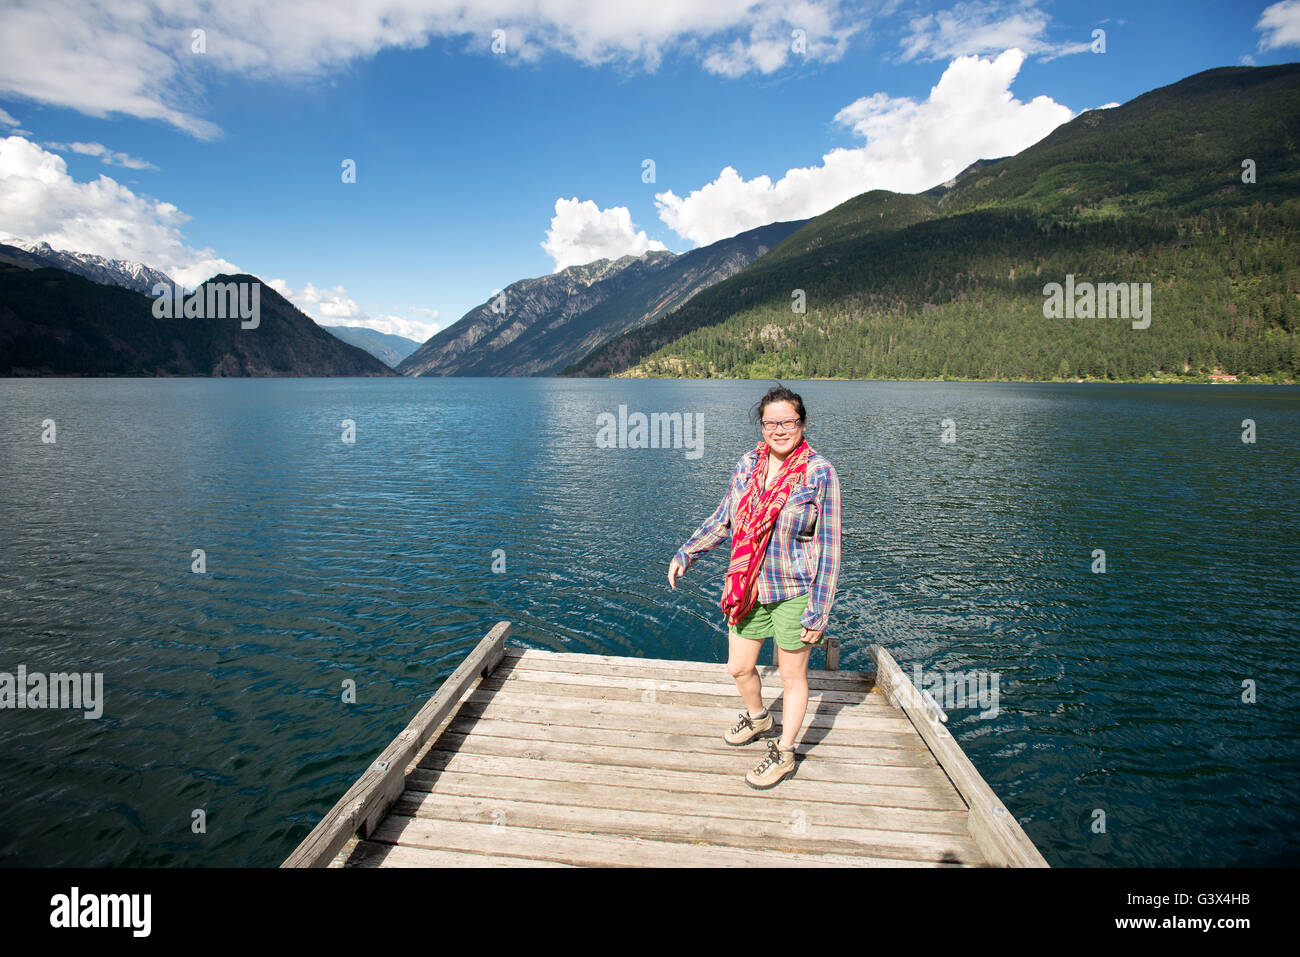 A woman on a dock at Anderson Lake,D'Arcy, near Pemberton, British Columbia.  Canada - Stock Image